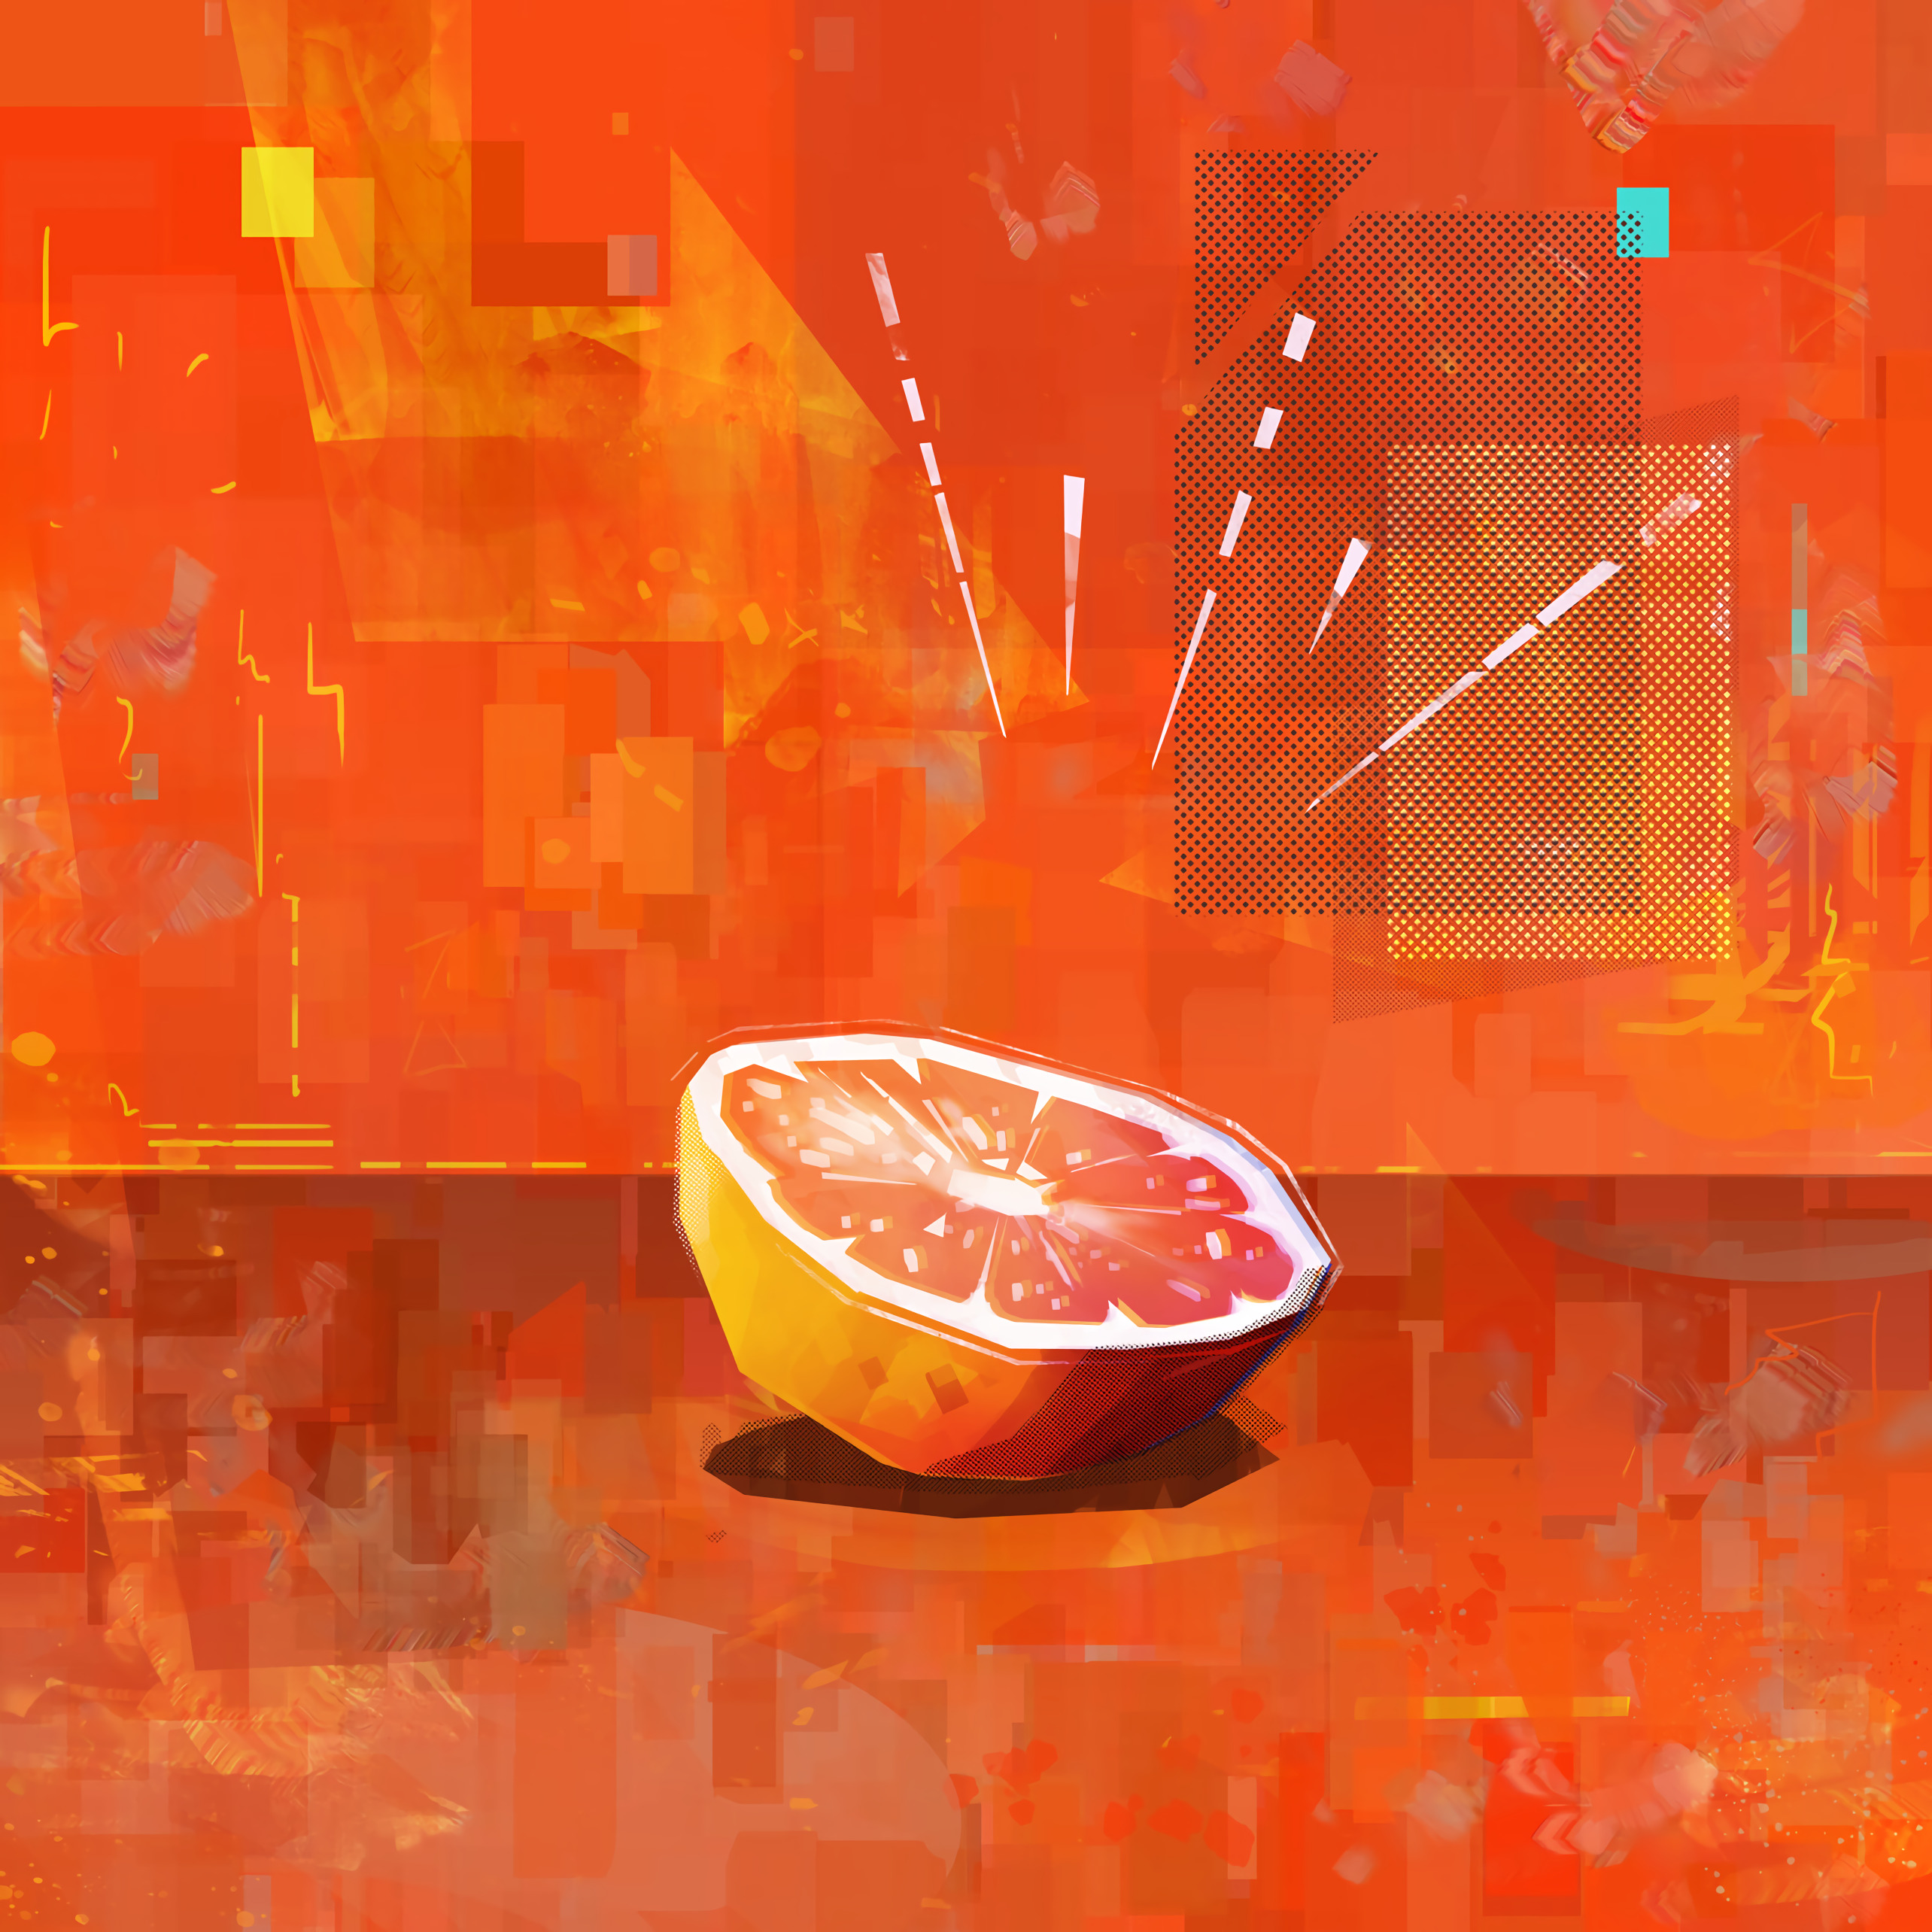 71847 download wallpaper Art, Fruit, Citrus, Lobules, Slices screensavers and pictures for free